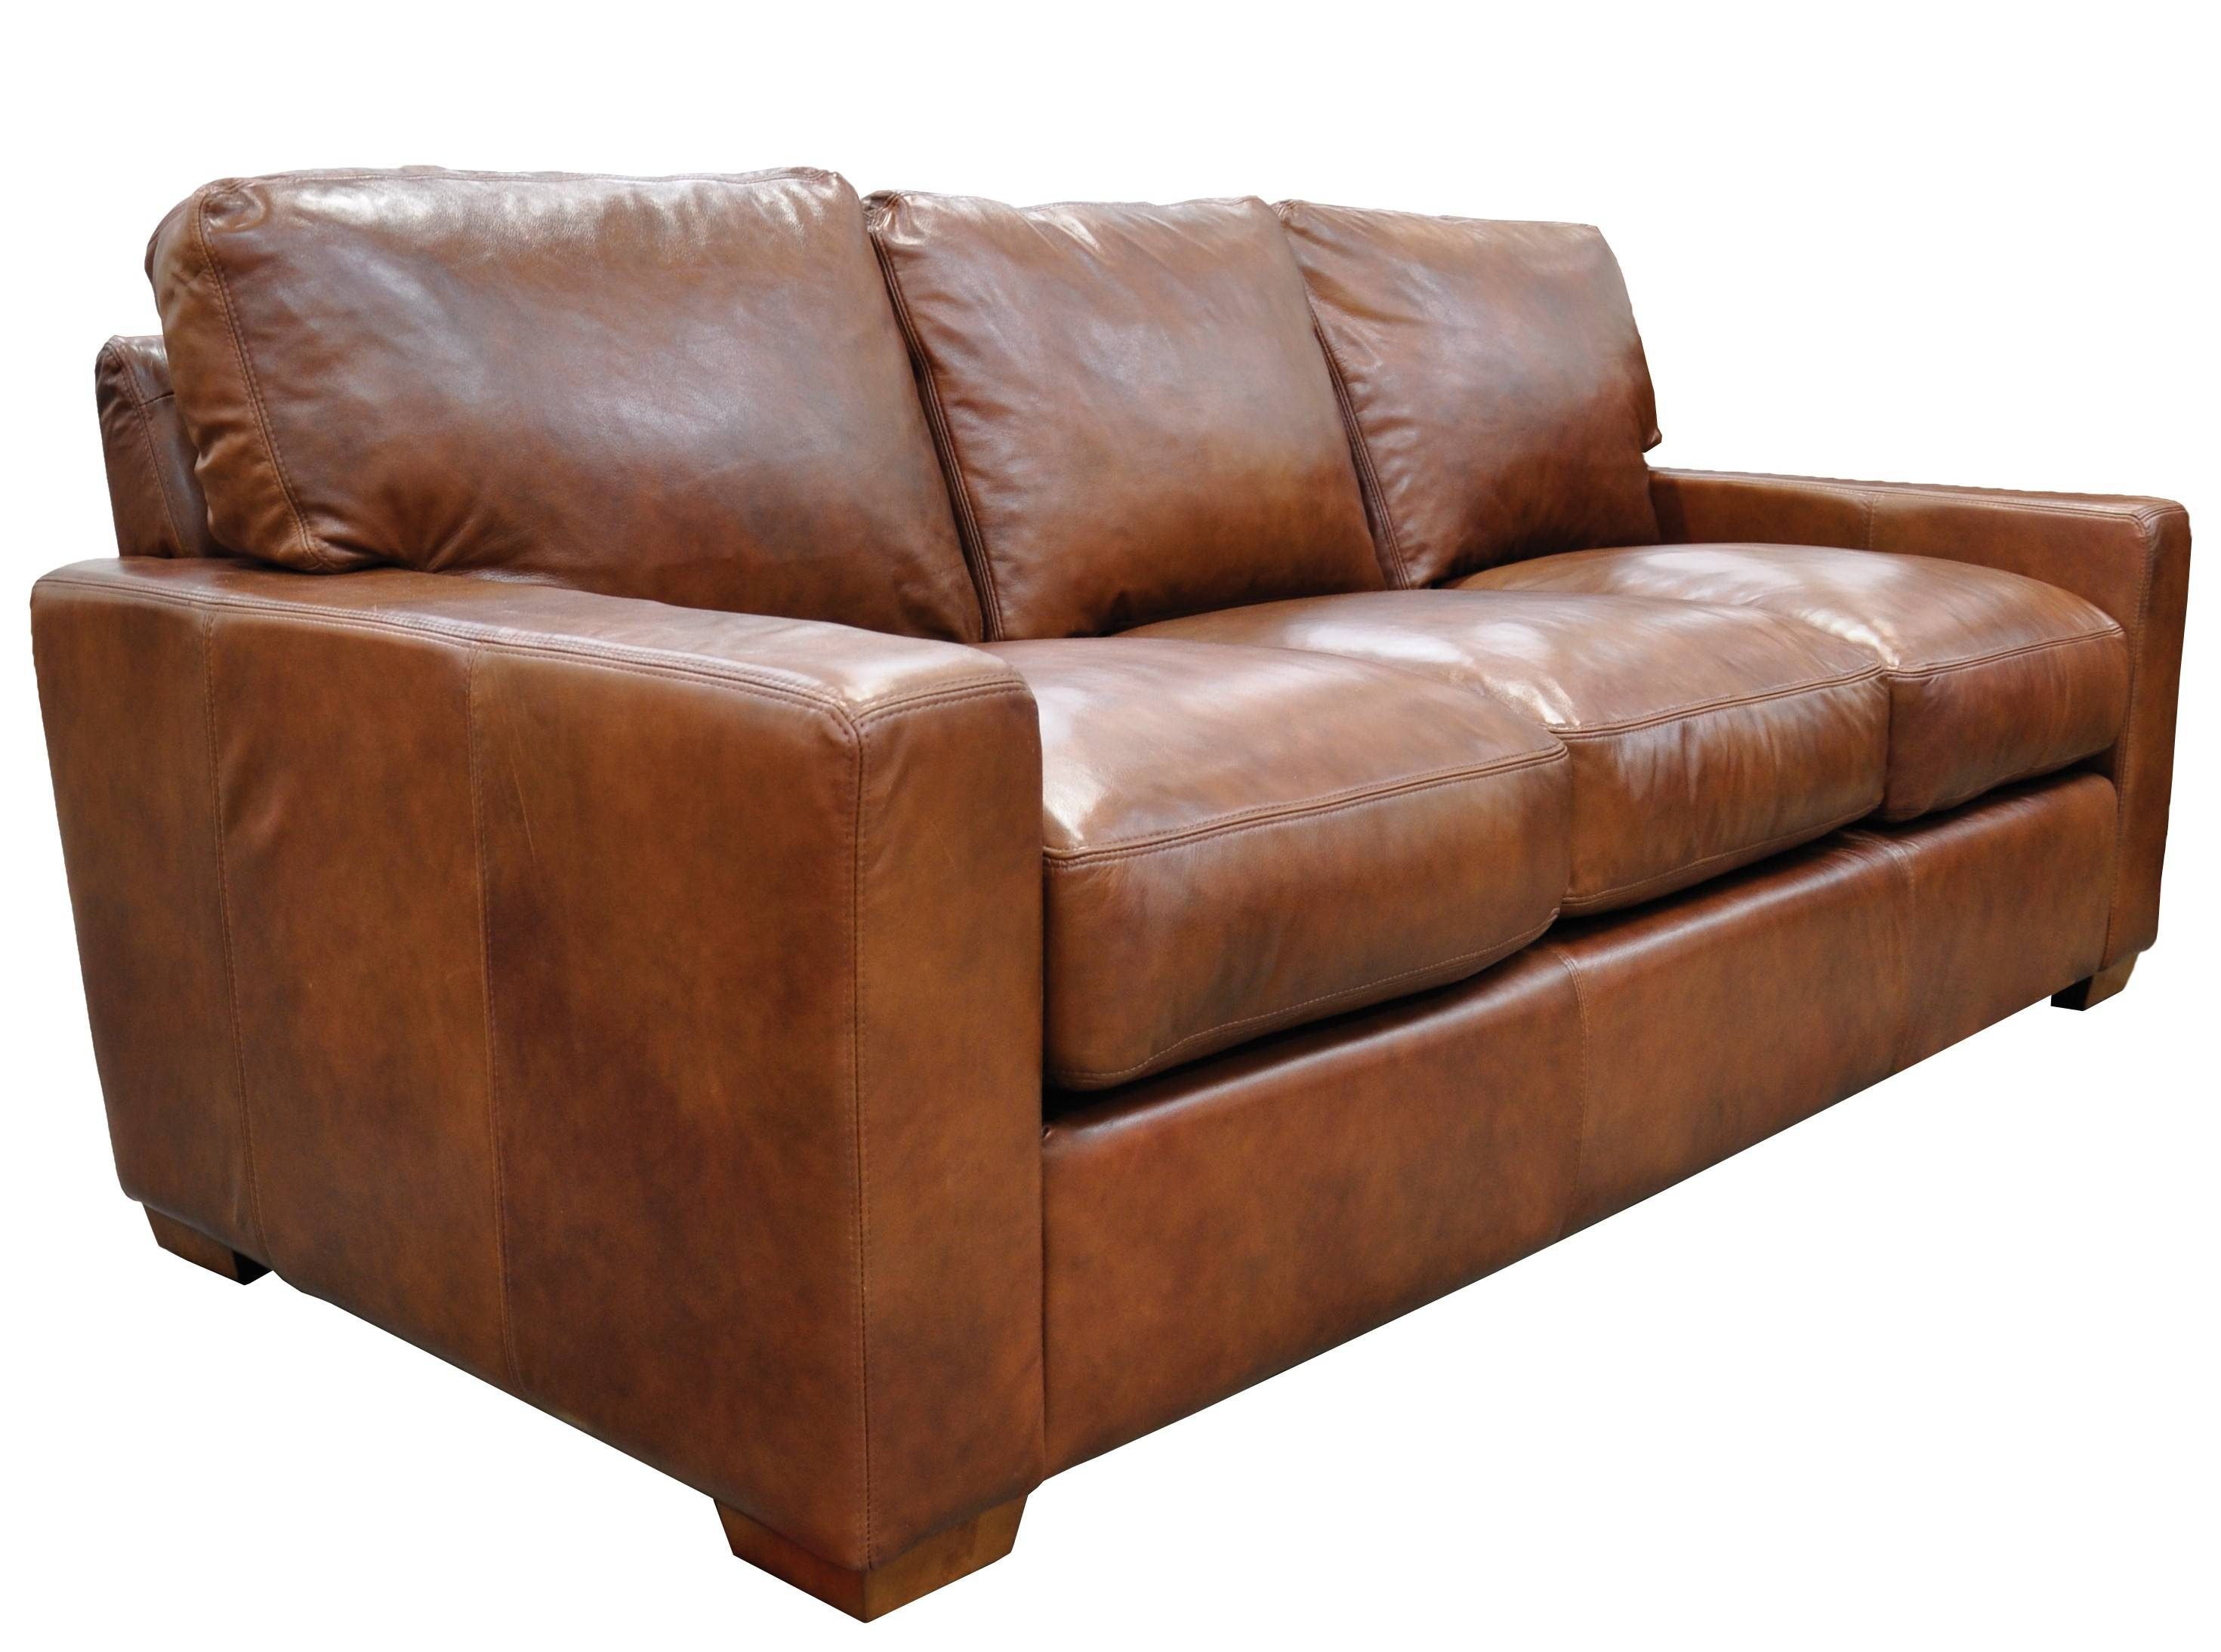 Furniture: Elegant Full Grain Leather Sofa For Luxury Living Room with regard to Aniline Leather Sofas (Image 19 of 30)